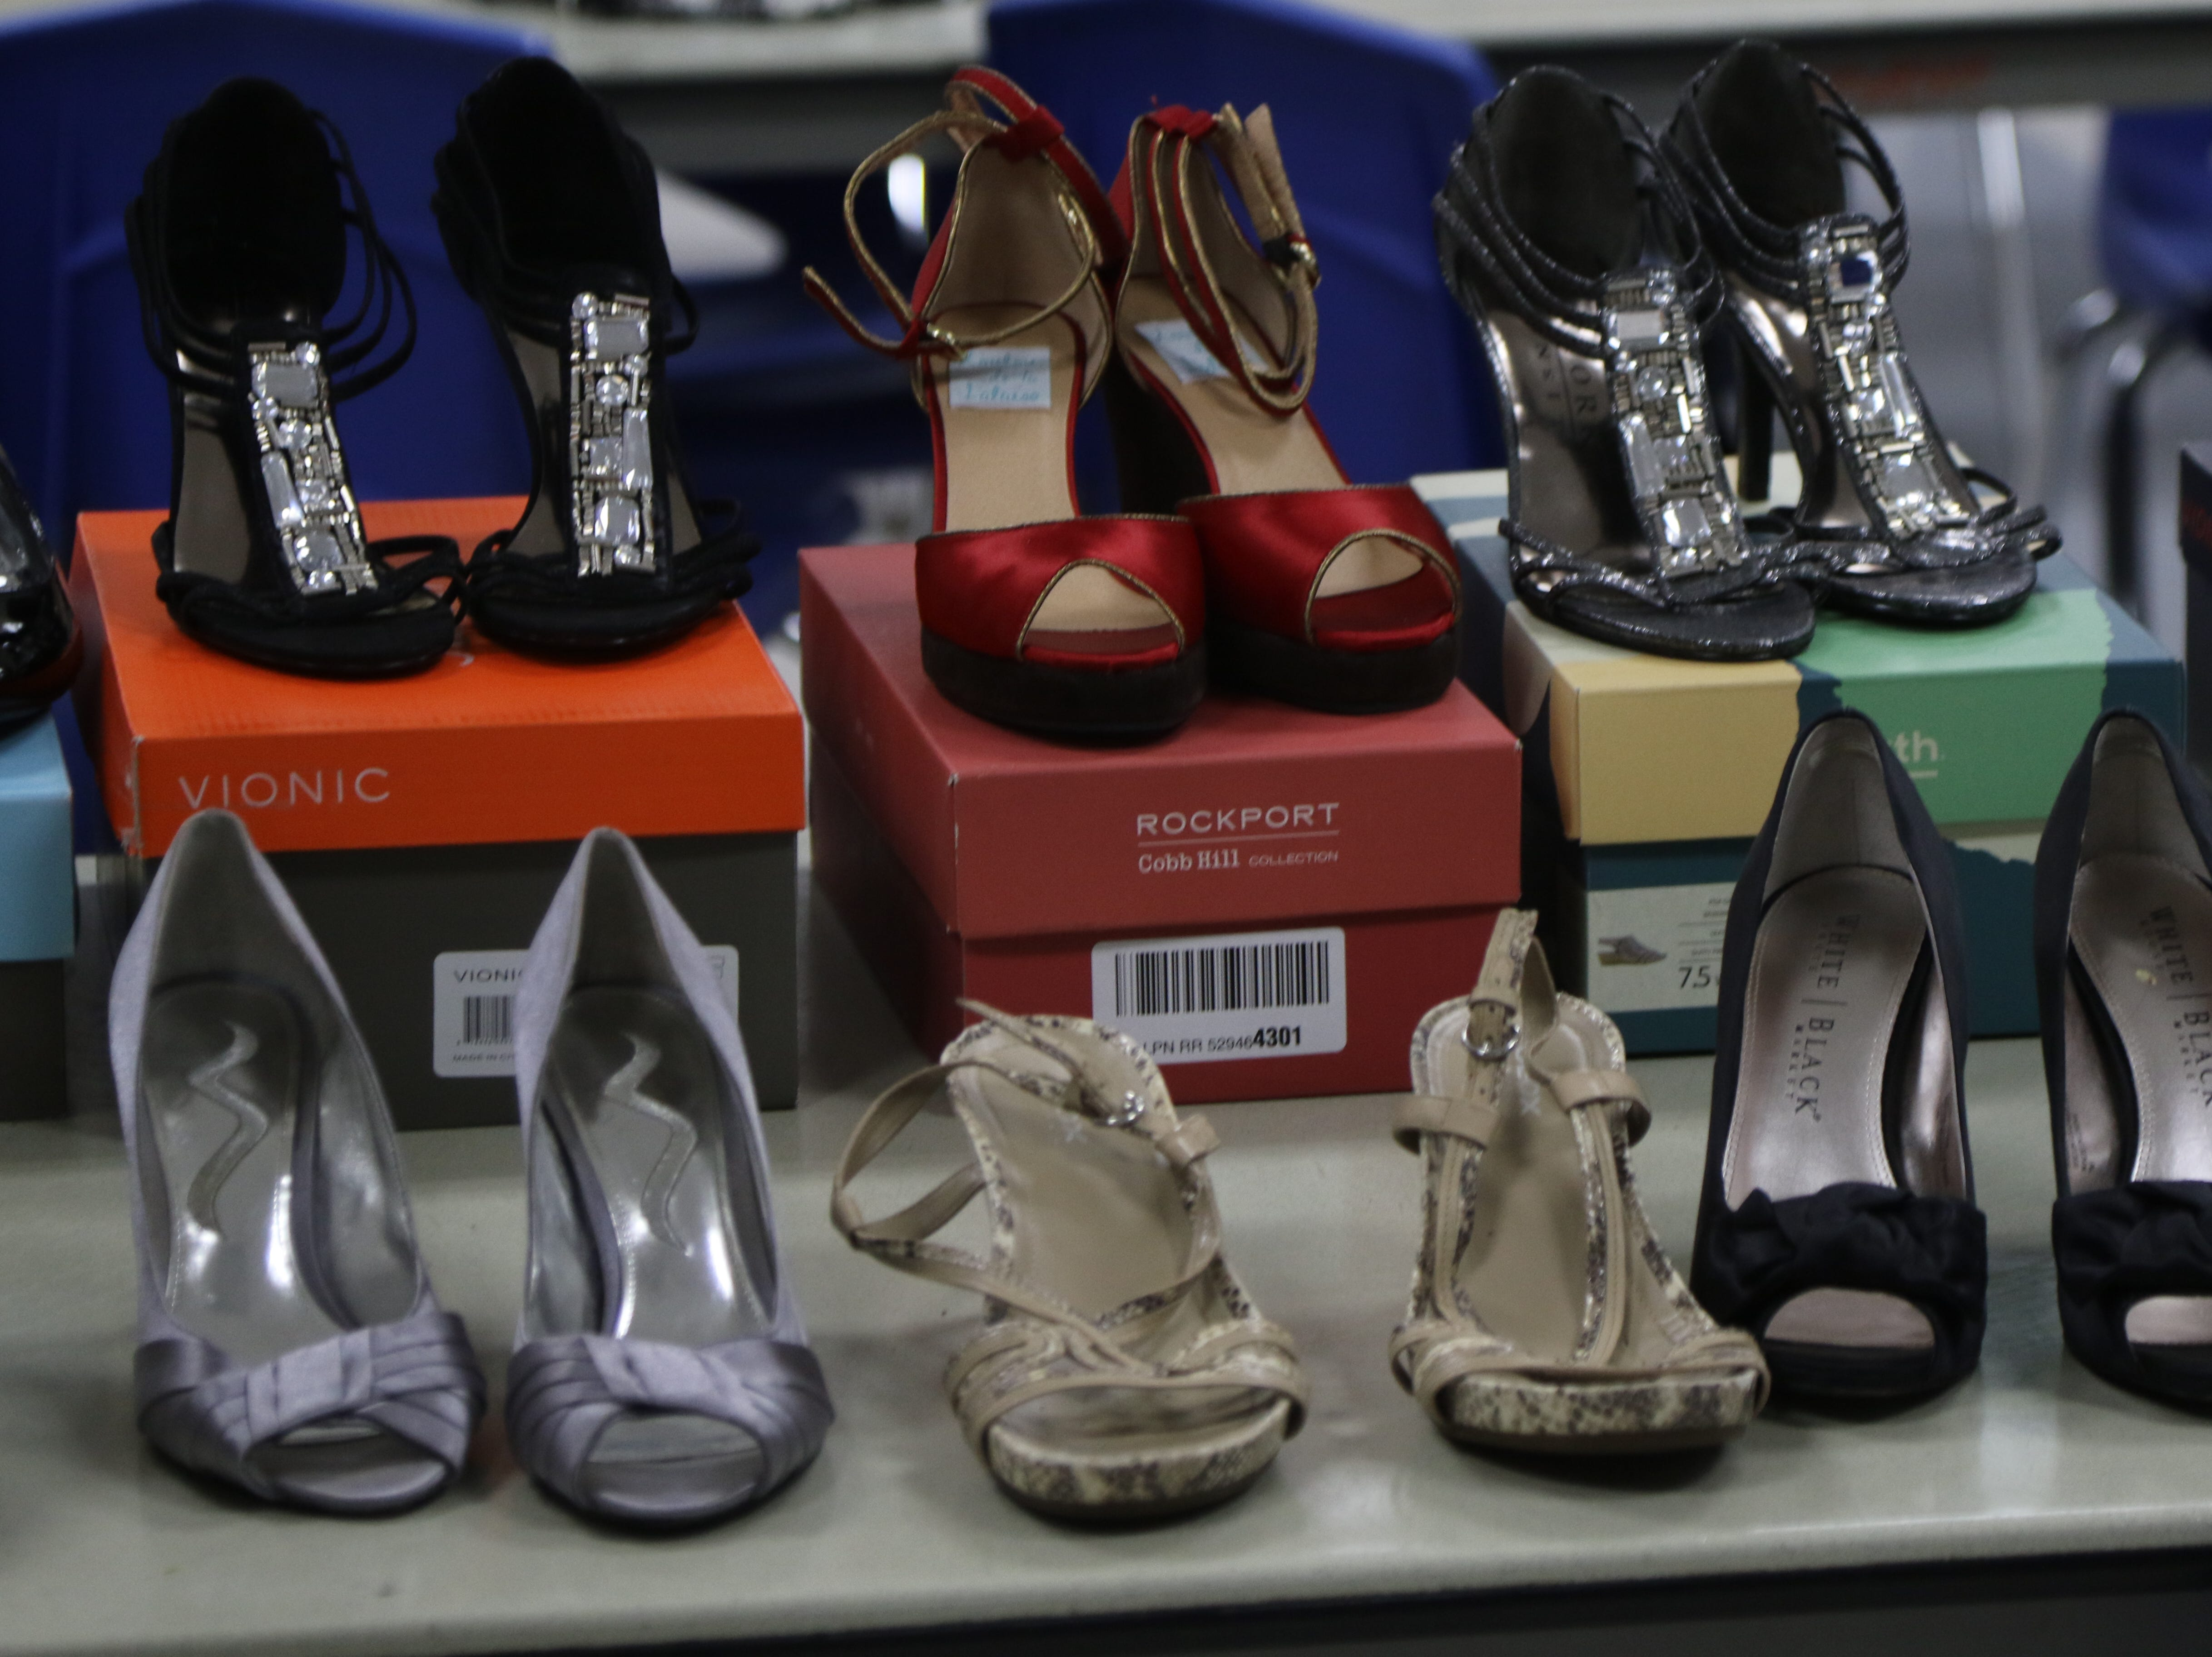 Shoes, jewelry and cosmetics packages from Mary Kay were donated along with prom gowns for the annual Prom Gown Giveaway held at Passaic County Technical Institute in Wayne on March 29, 2019.